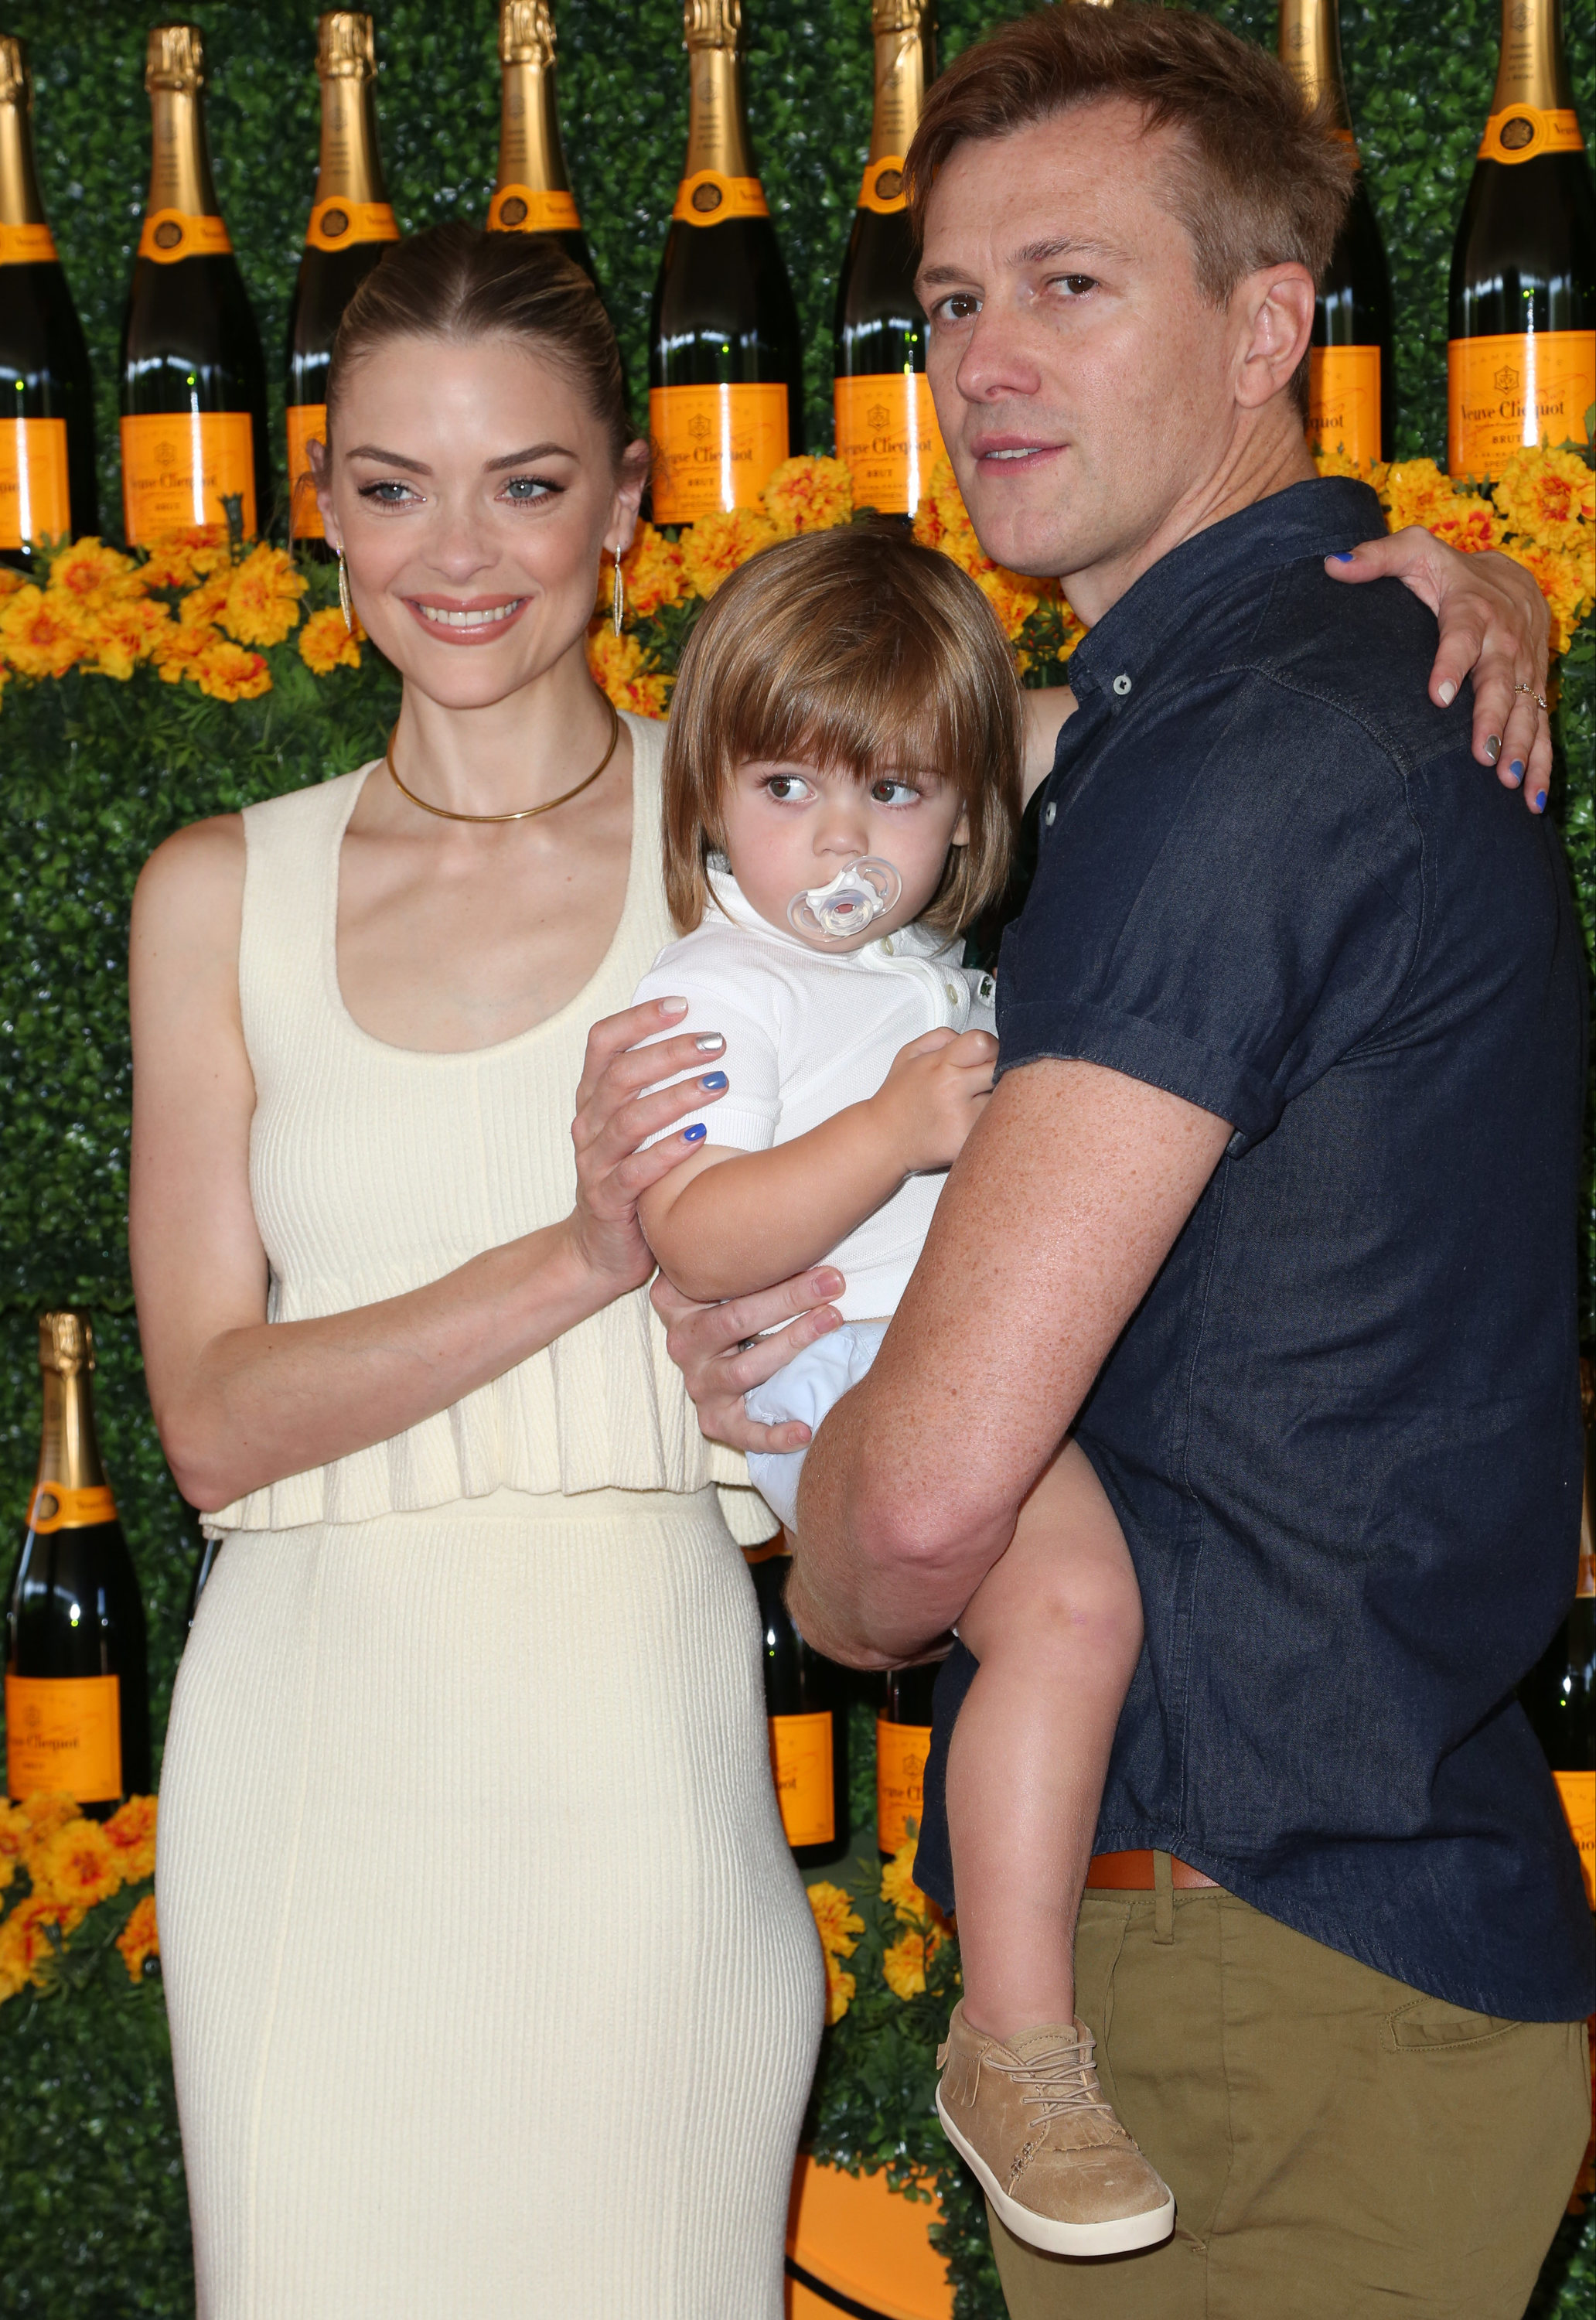 Jaime King on how technology has helped her as a mom: